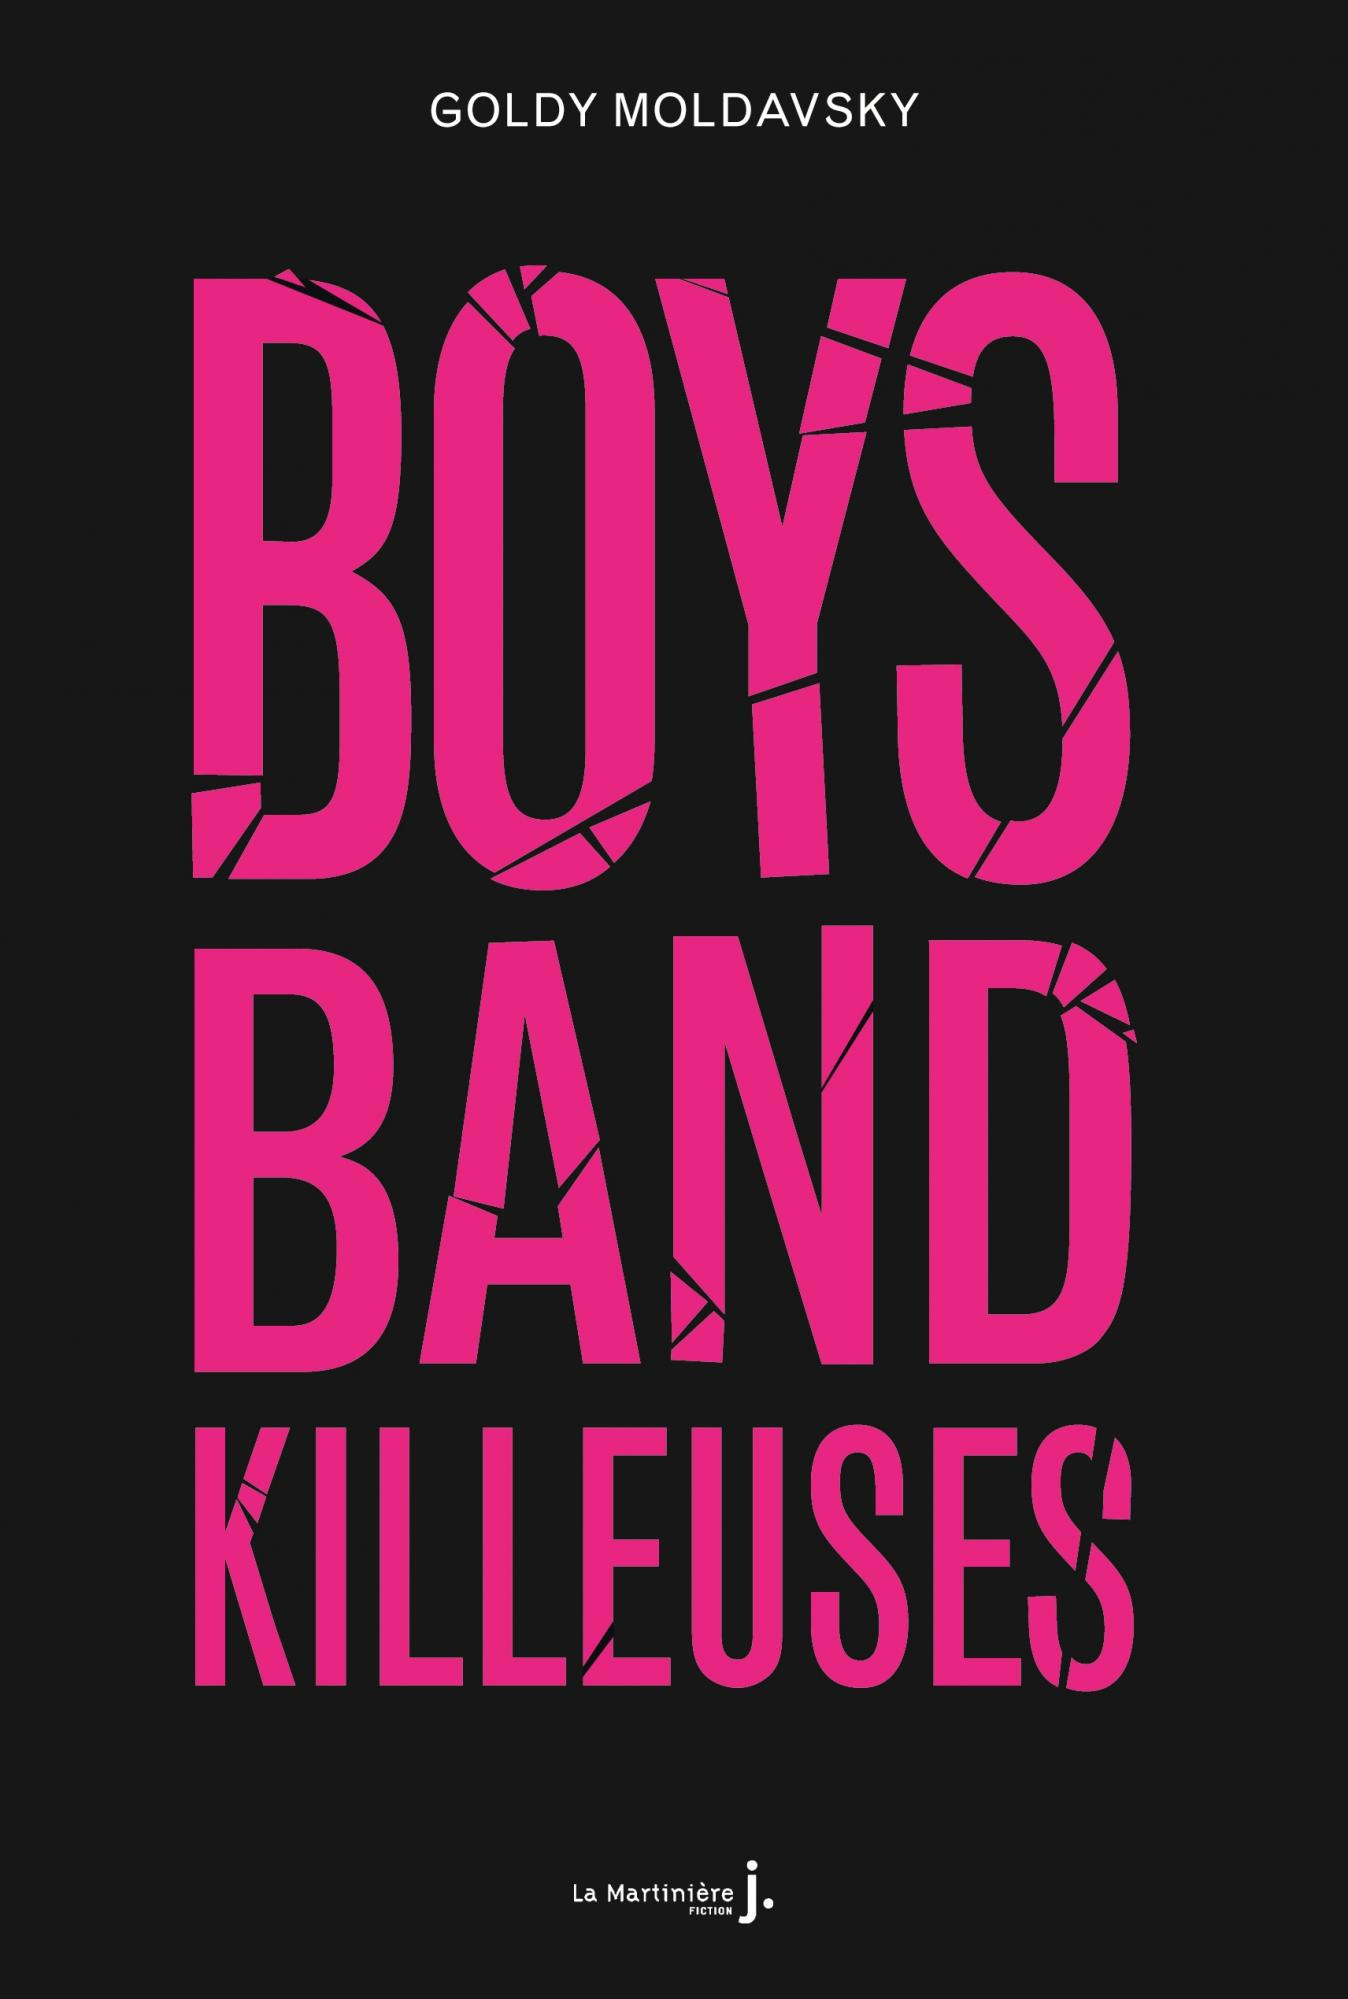 Image result for boys band killeuses